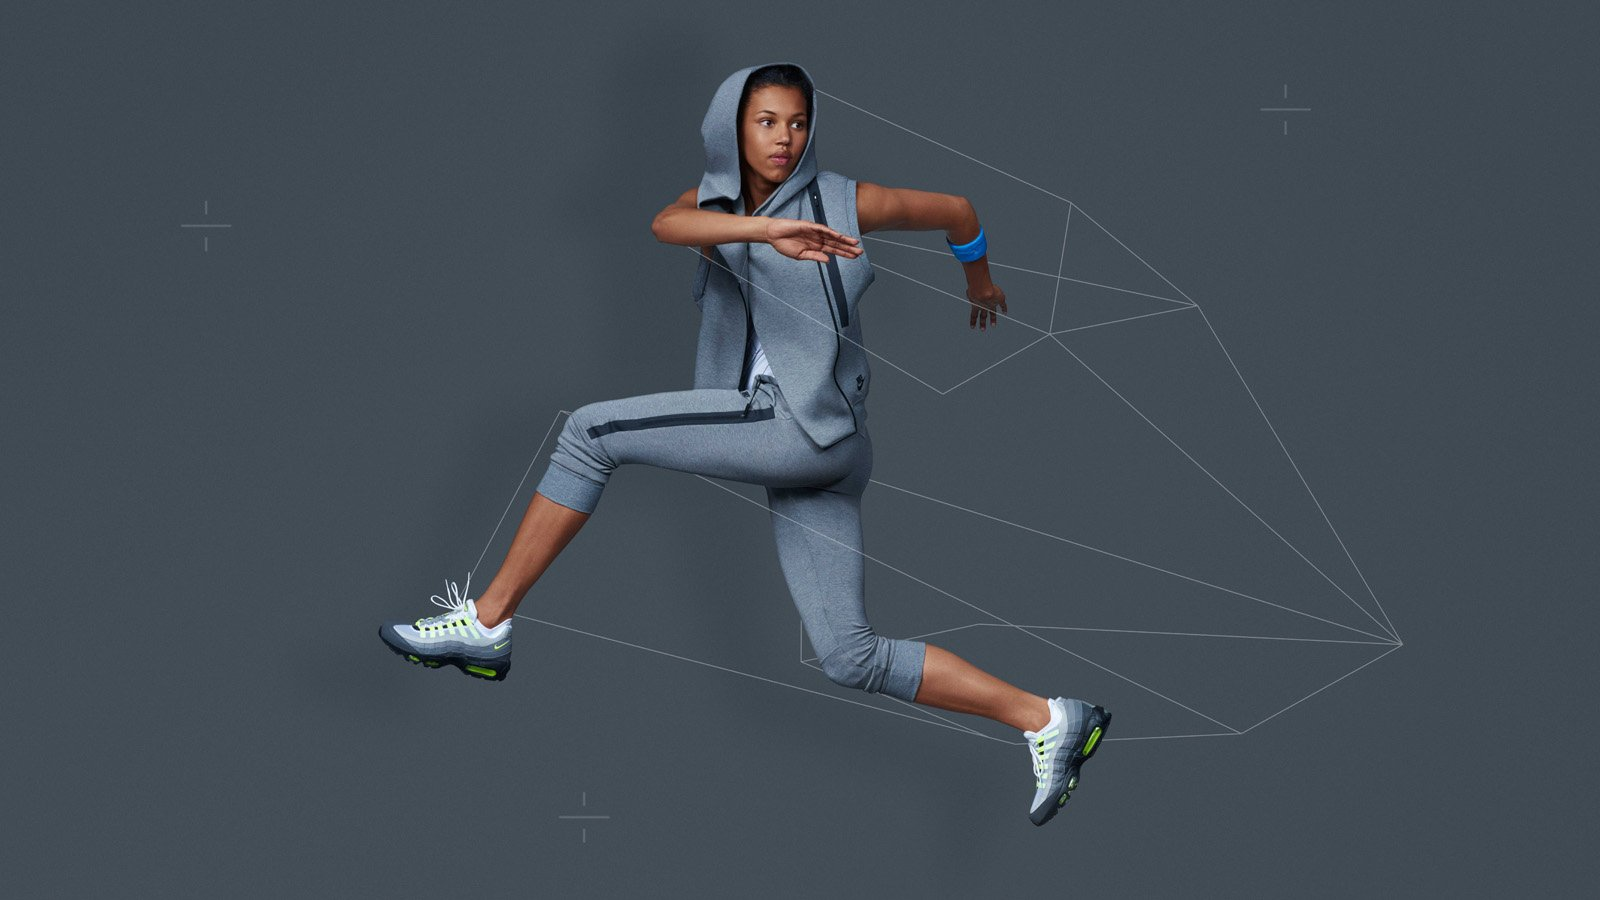 NikeWomen_FA15_Lookbook_MorganLake_NSW_Geometry_1_original.jpg